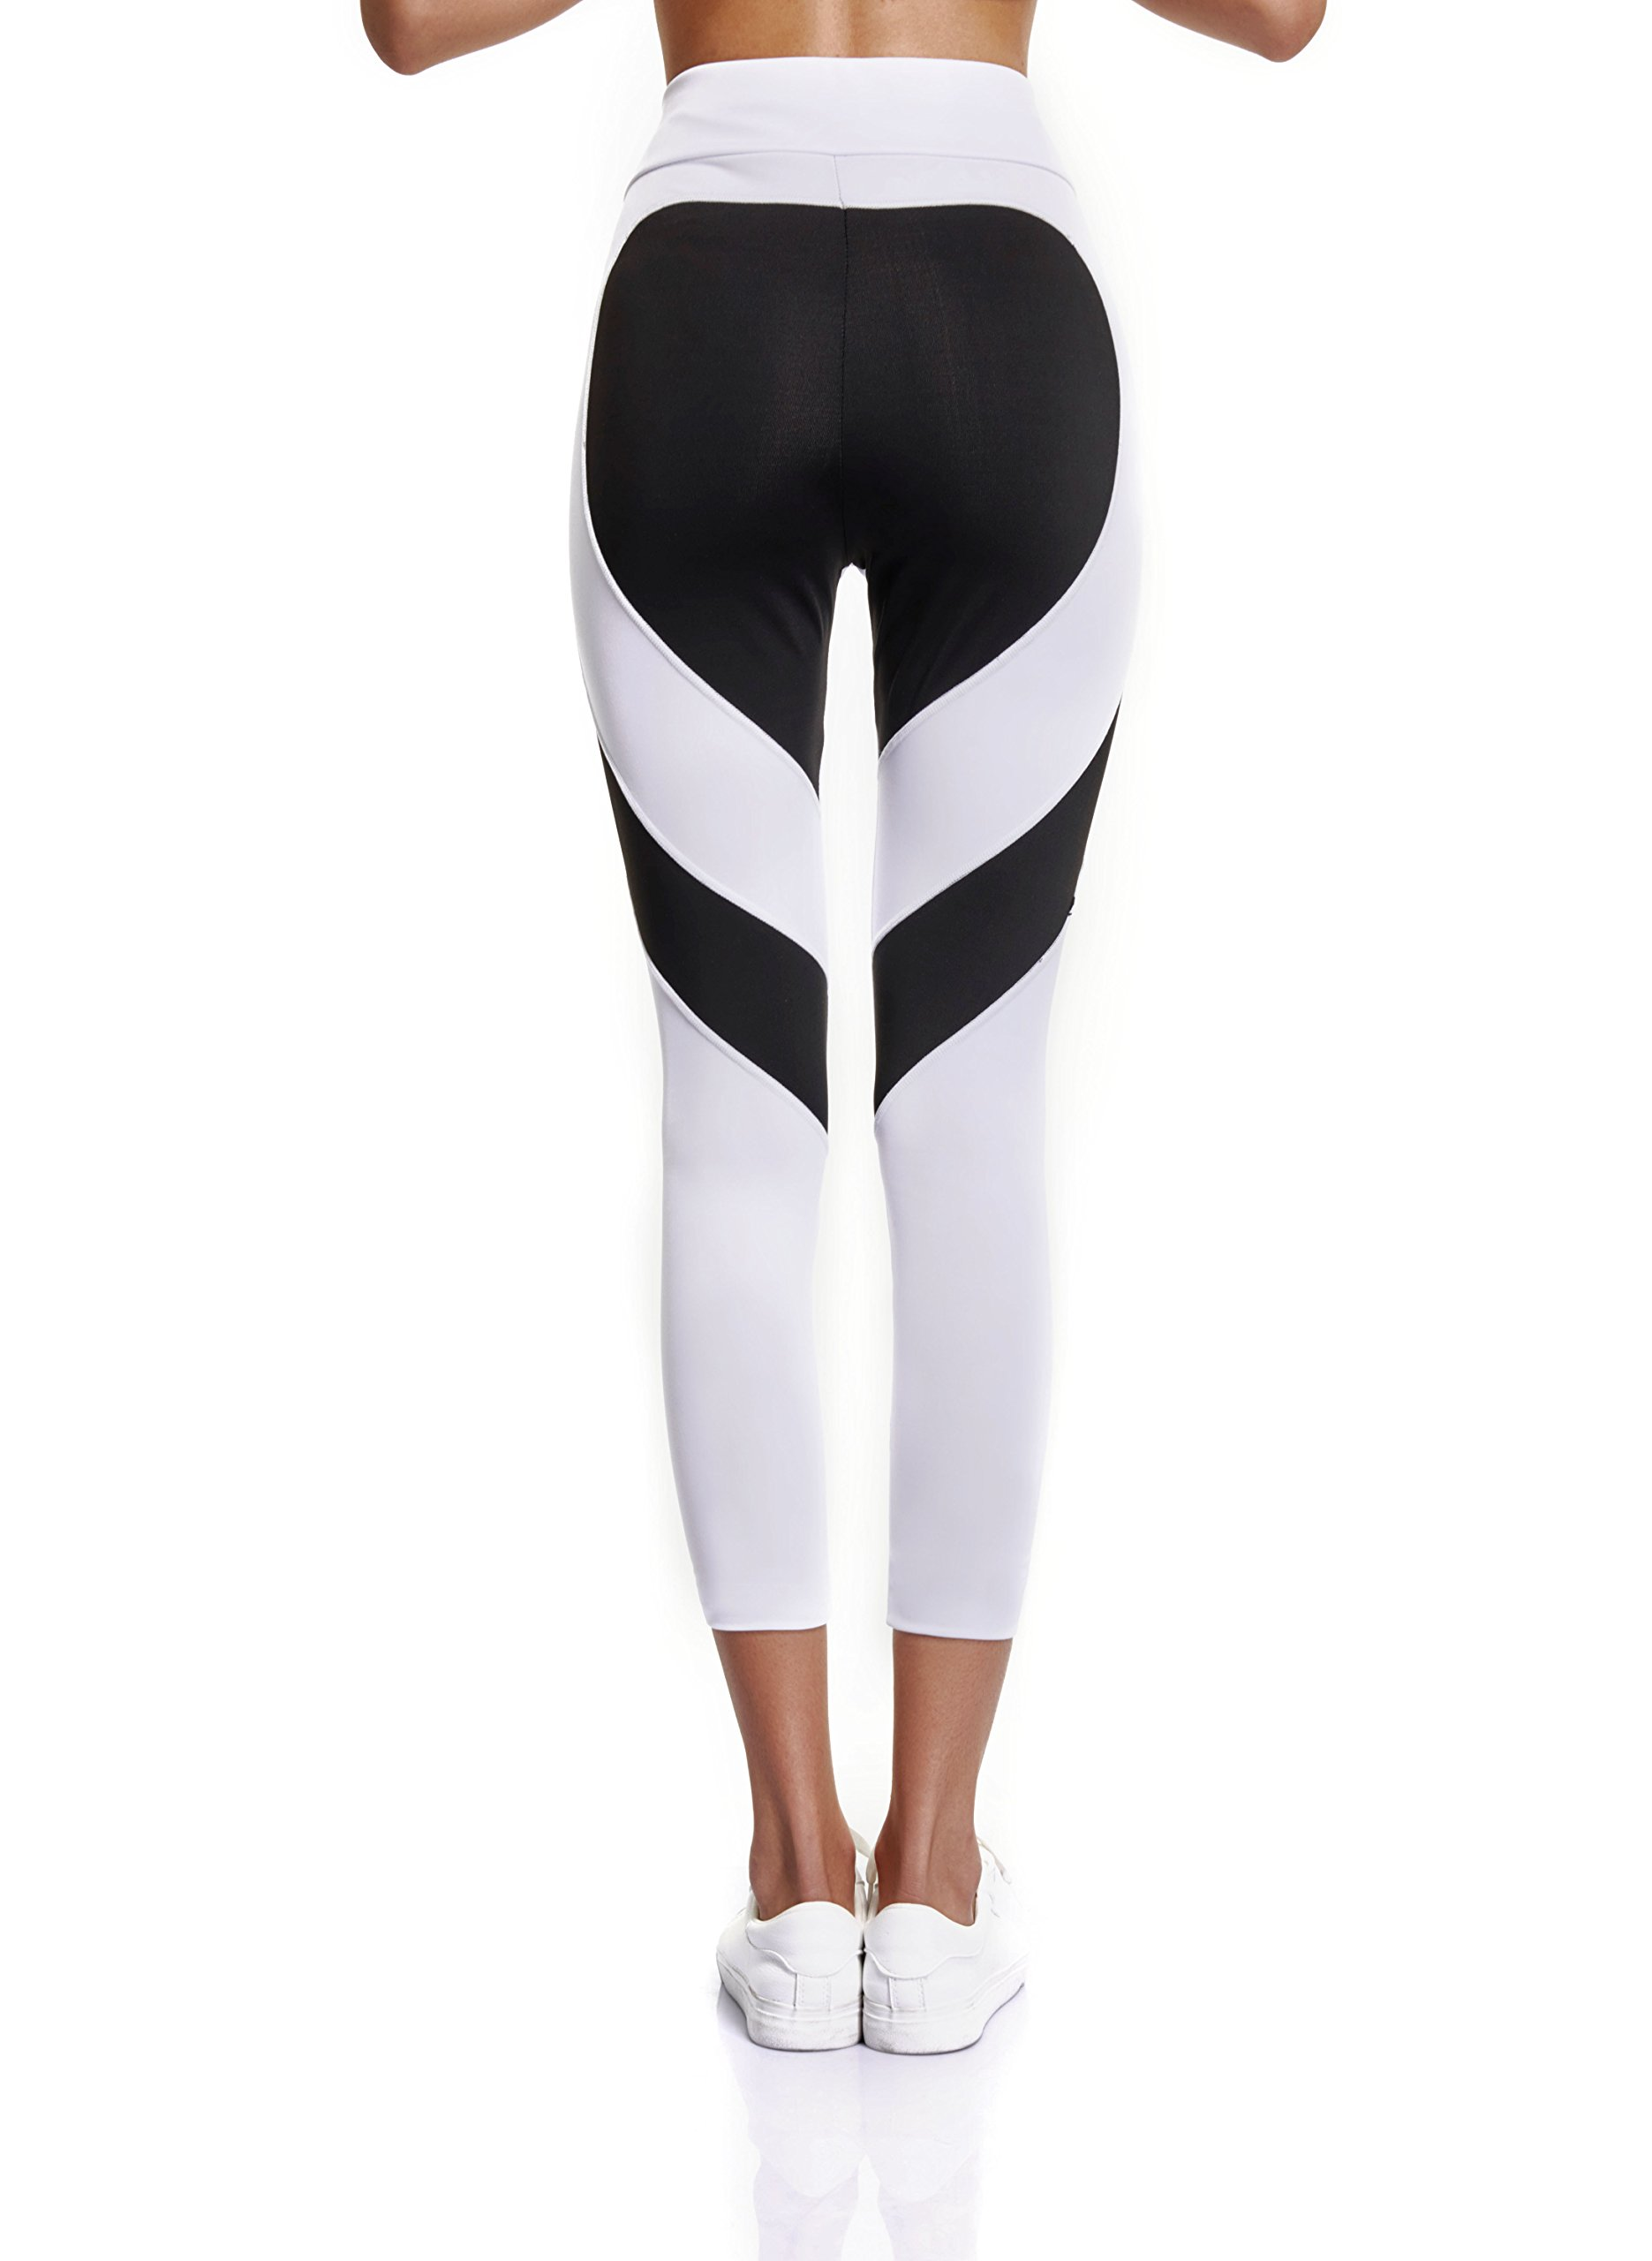 Joyshaper Capri Leggings for Women Workout Running Trousers High Waist Pants with Heart Shape (White/Black, M)